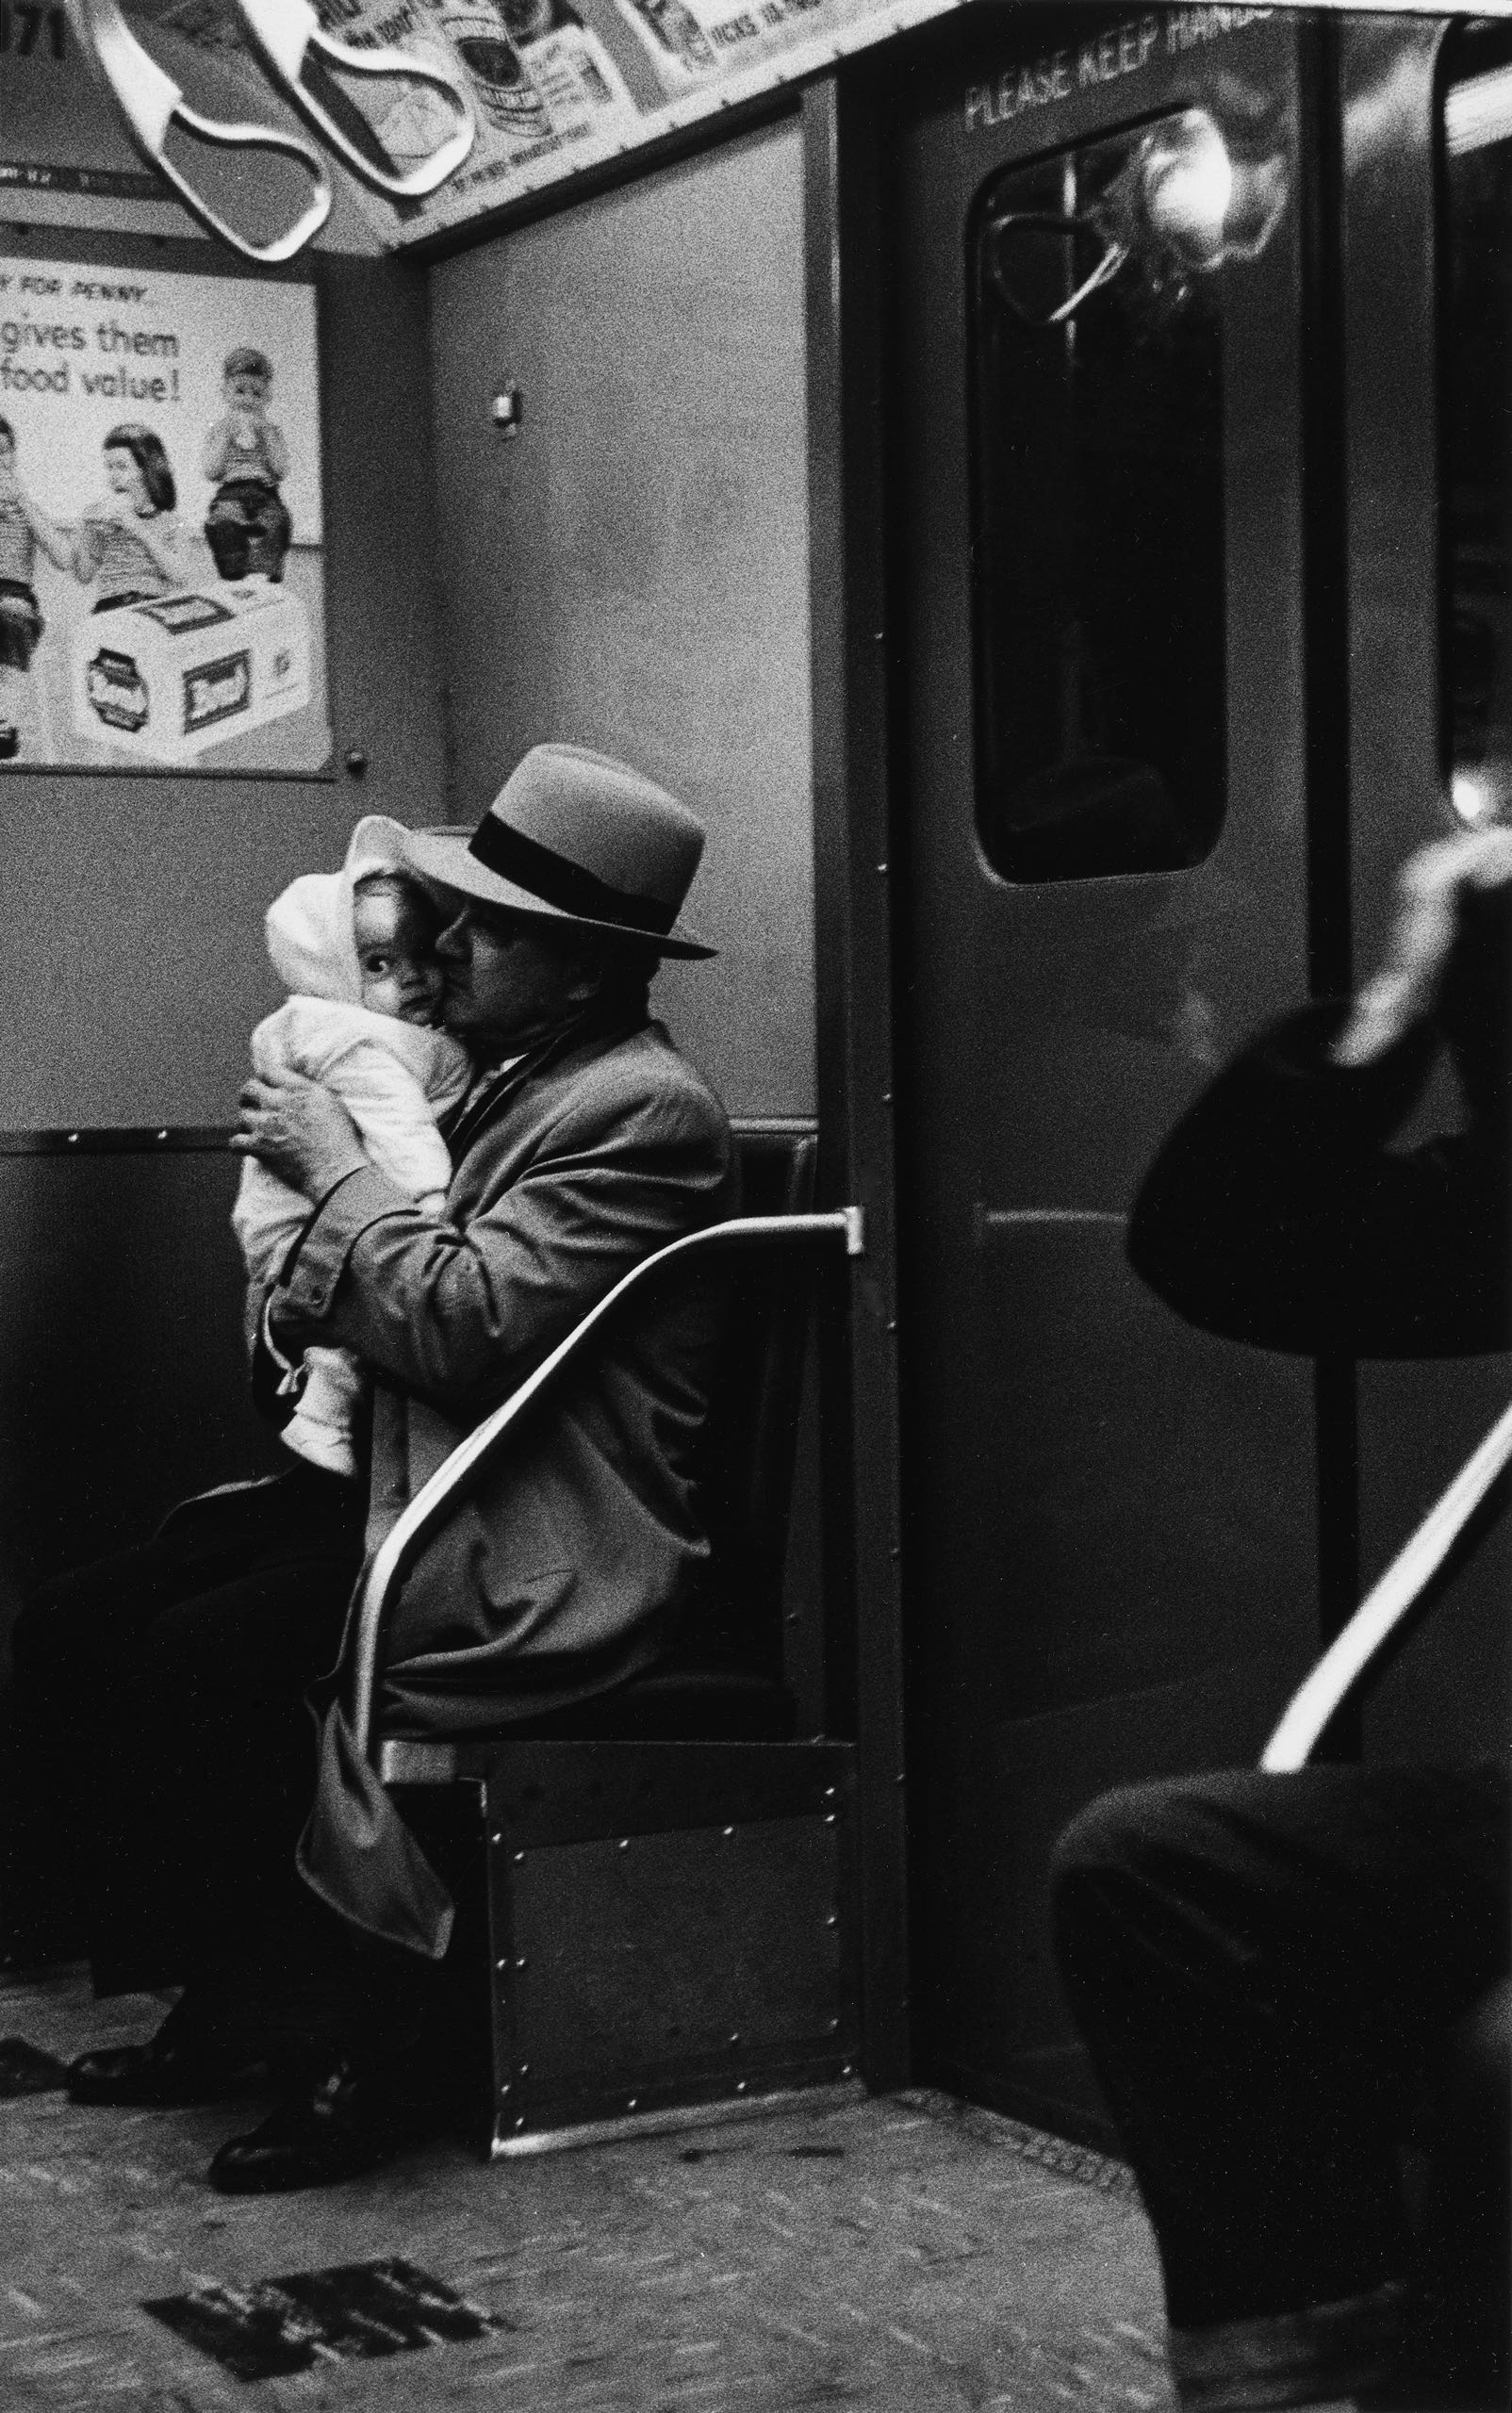 Diane Arbus photograph of a man and child in a subway car